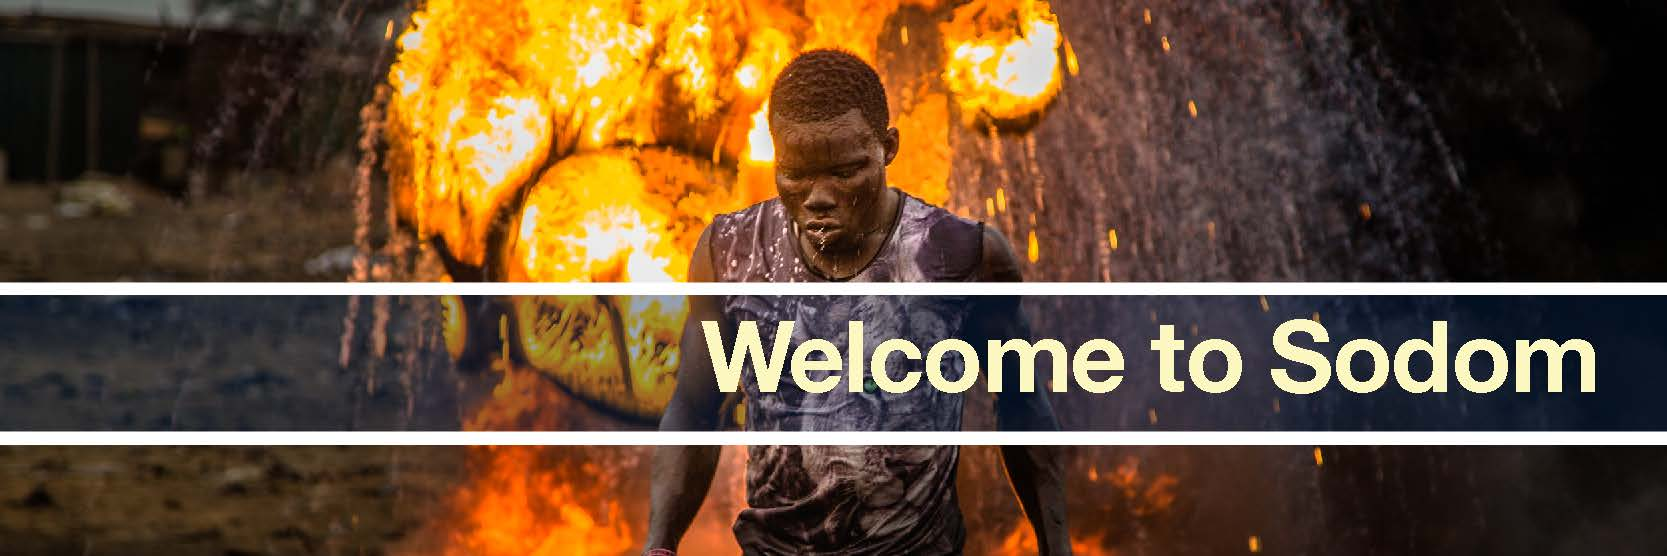 welcome to sodom banner.jpg